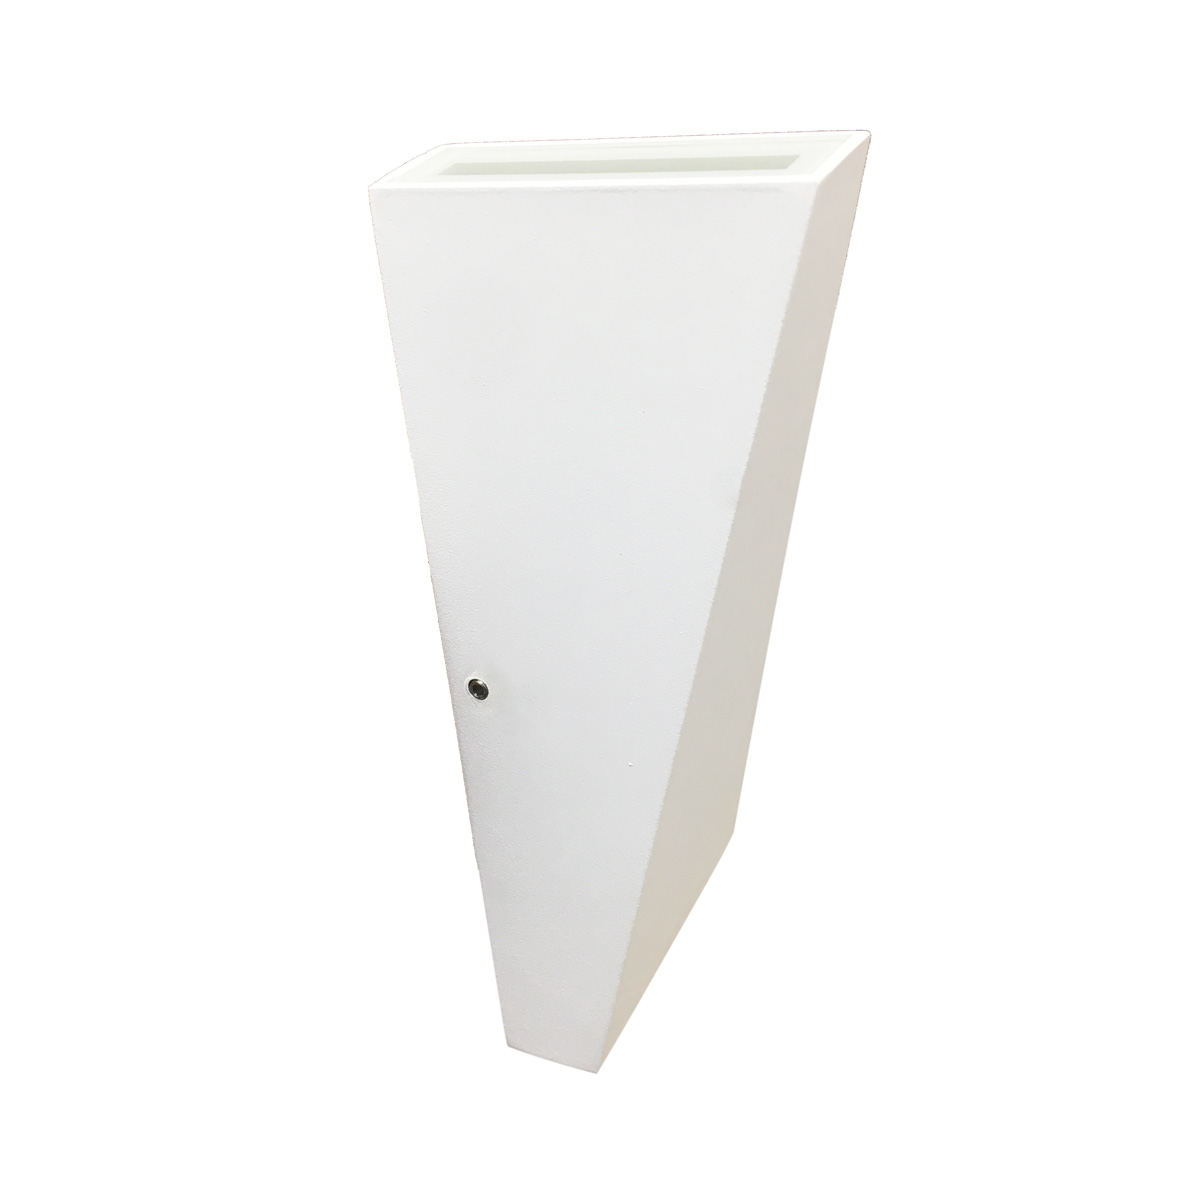 Wall lamp LED 10w cone, square finishing white mono beam